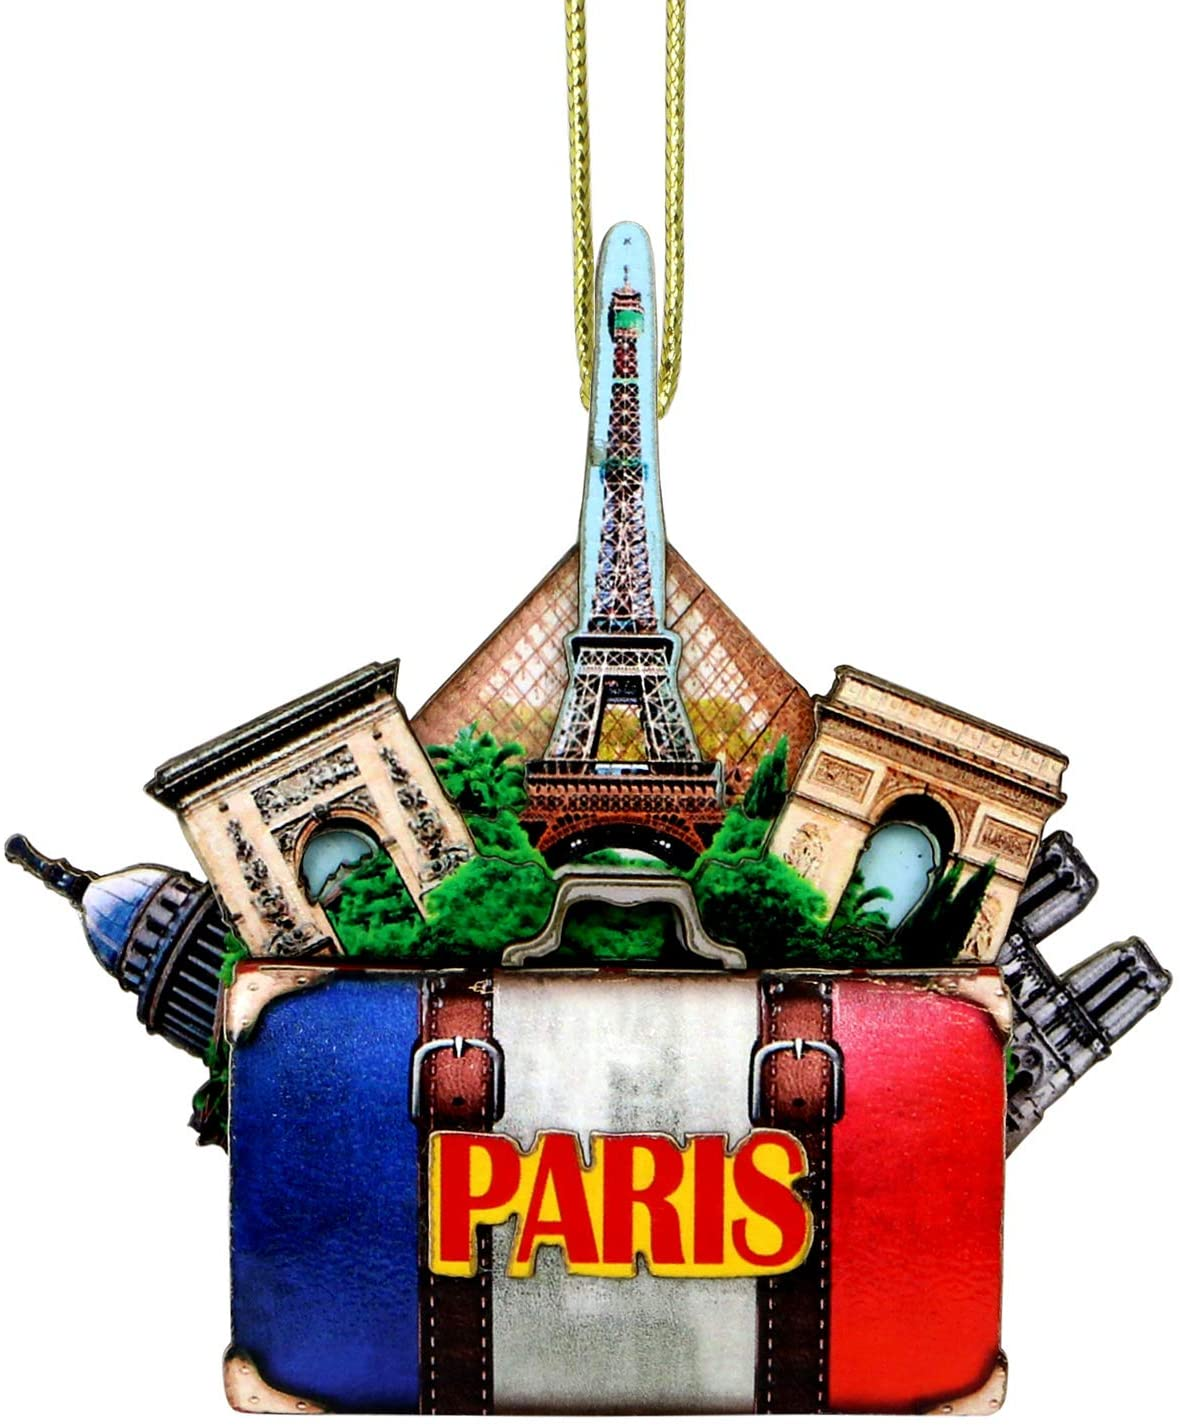 Paris suitcase monument ornament